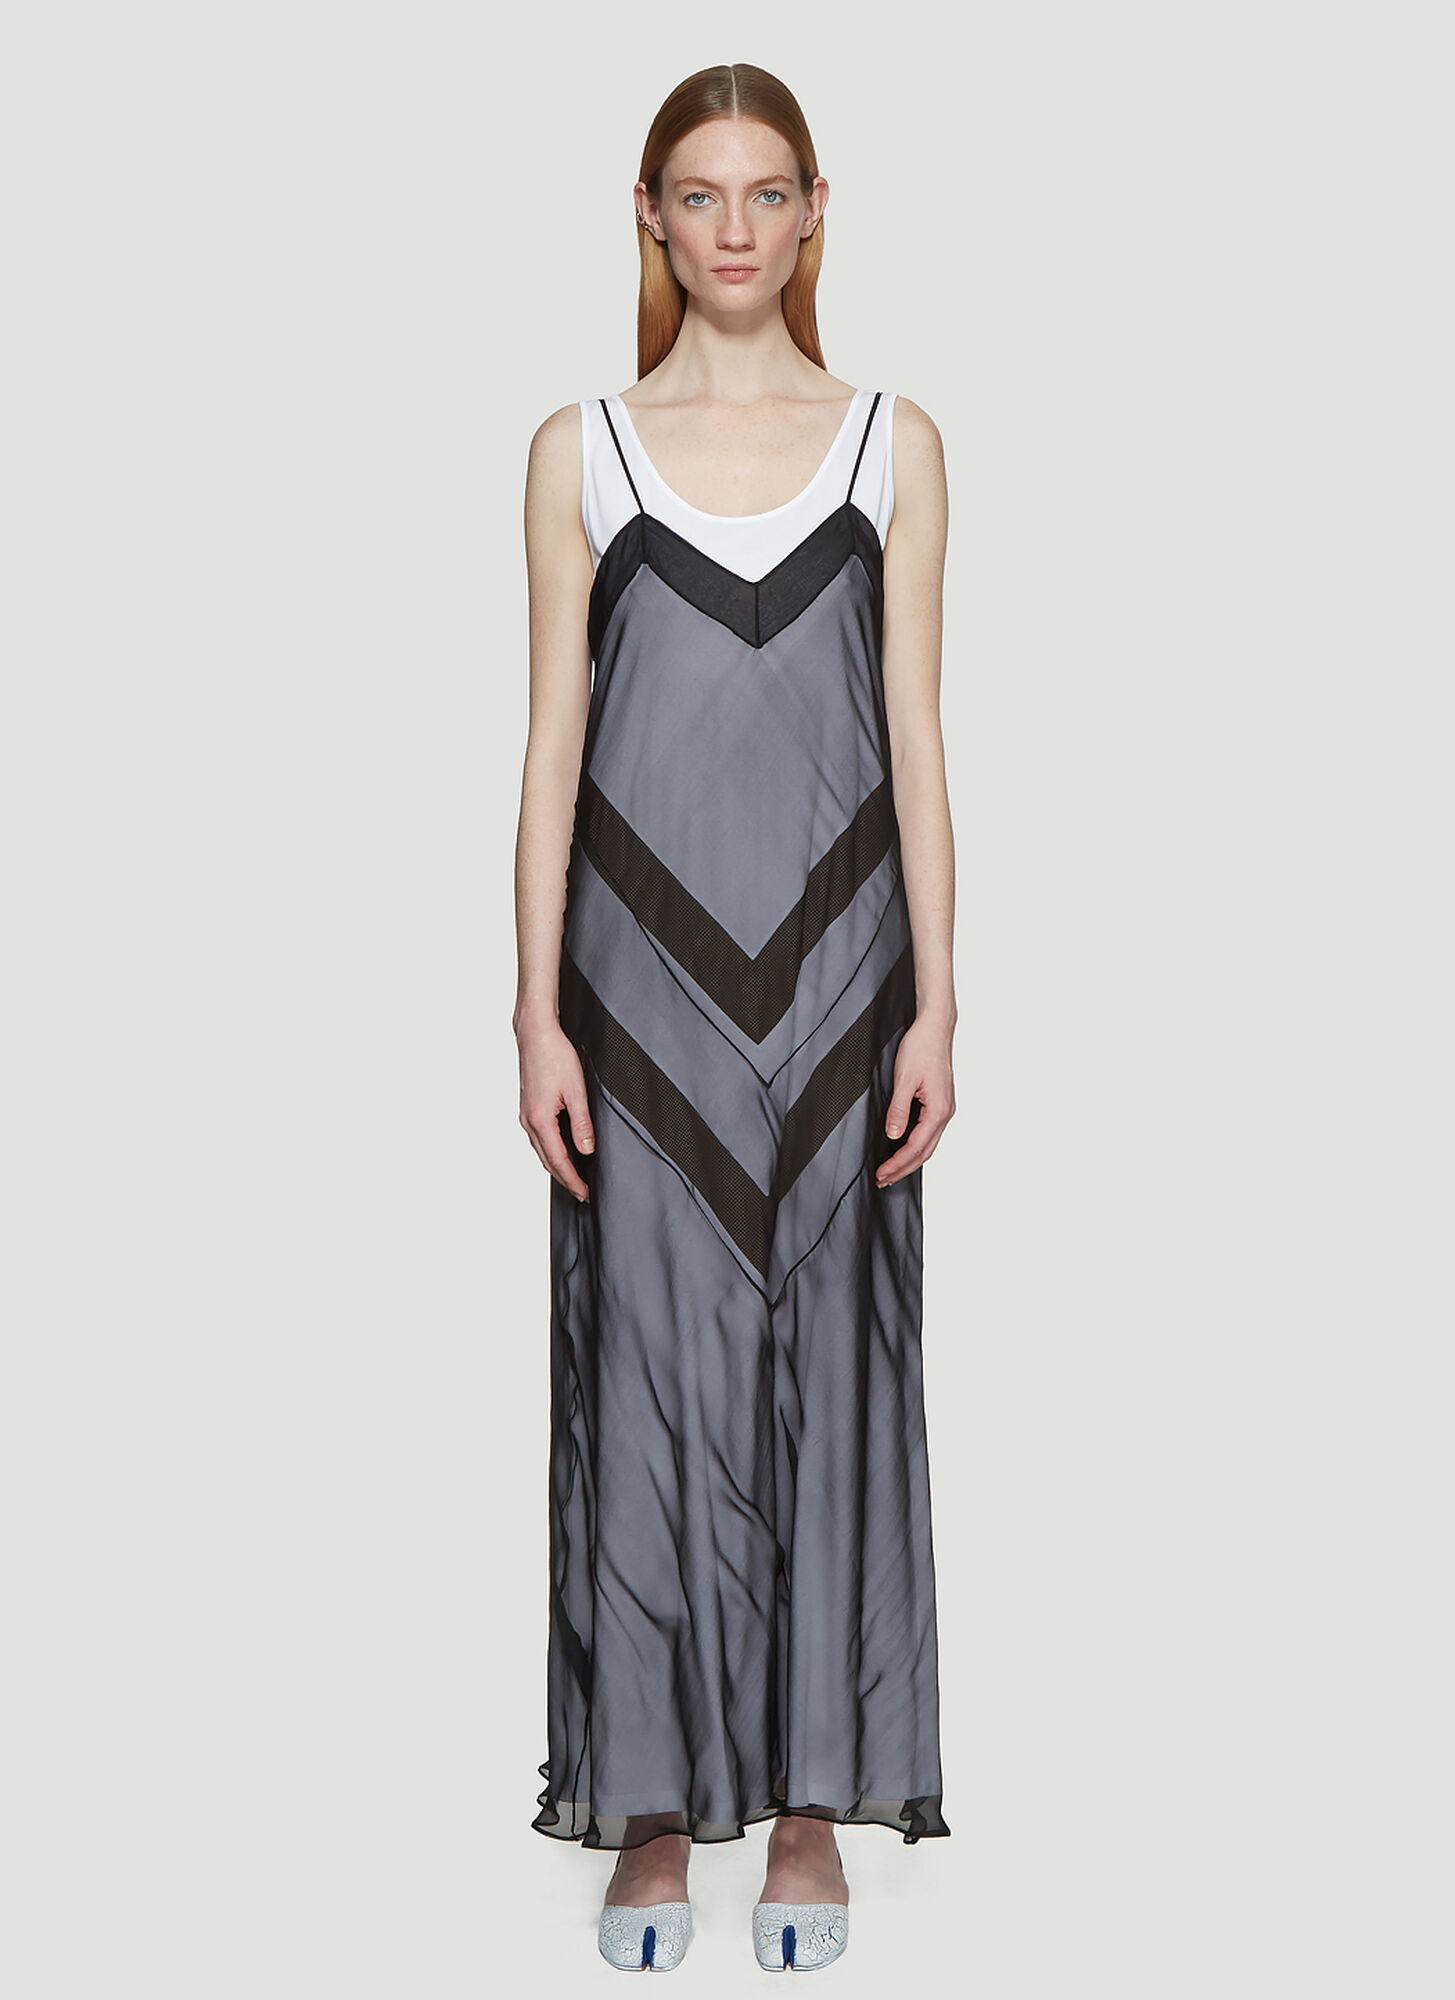 Maison Margiela Zig Zag Overlay Dress in Black